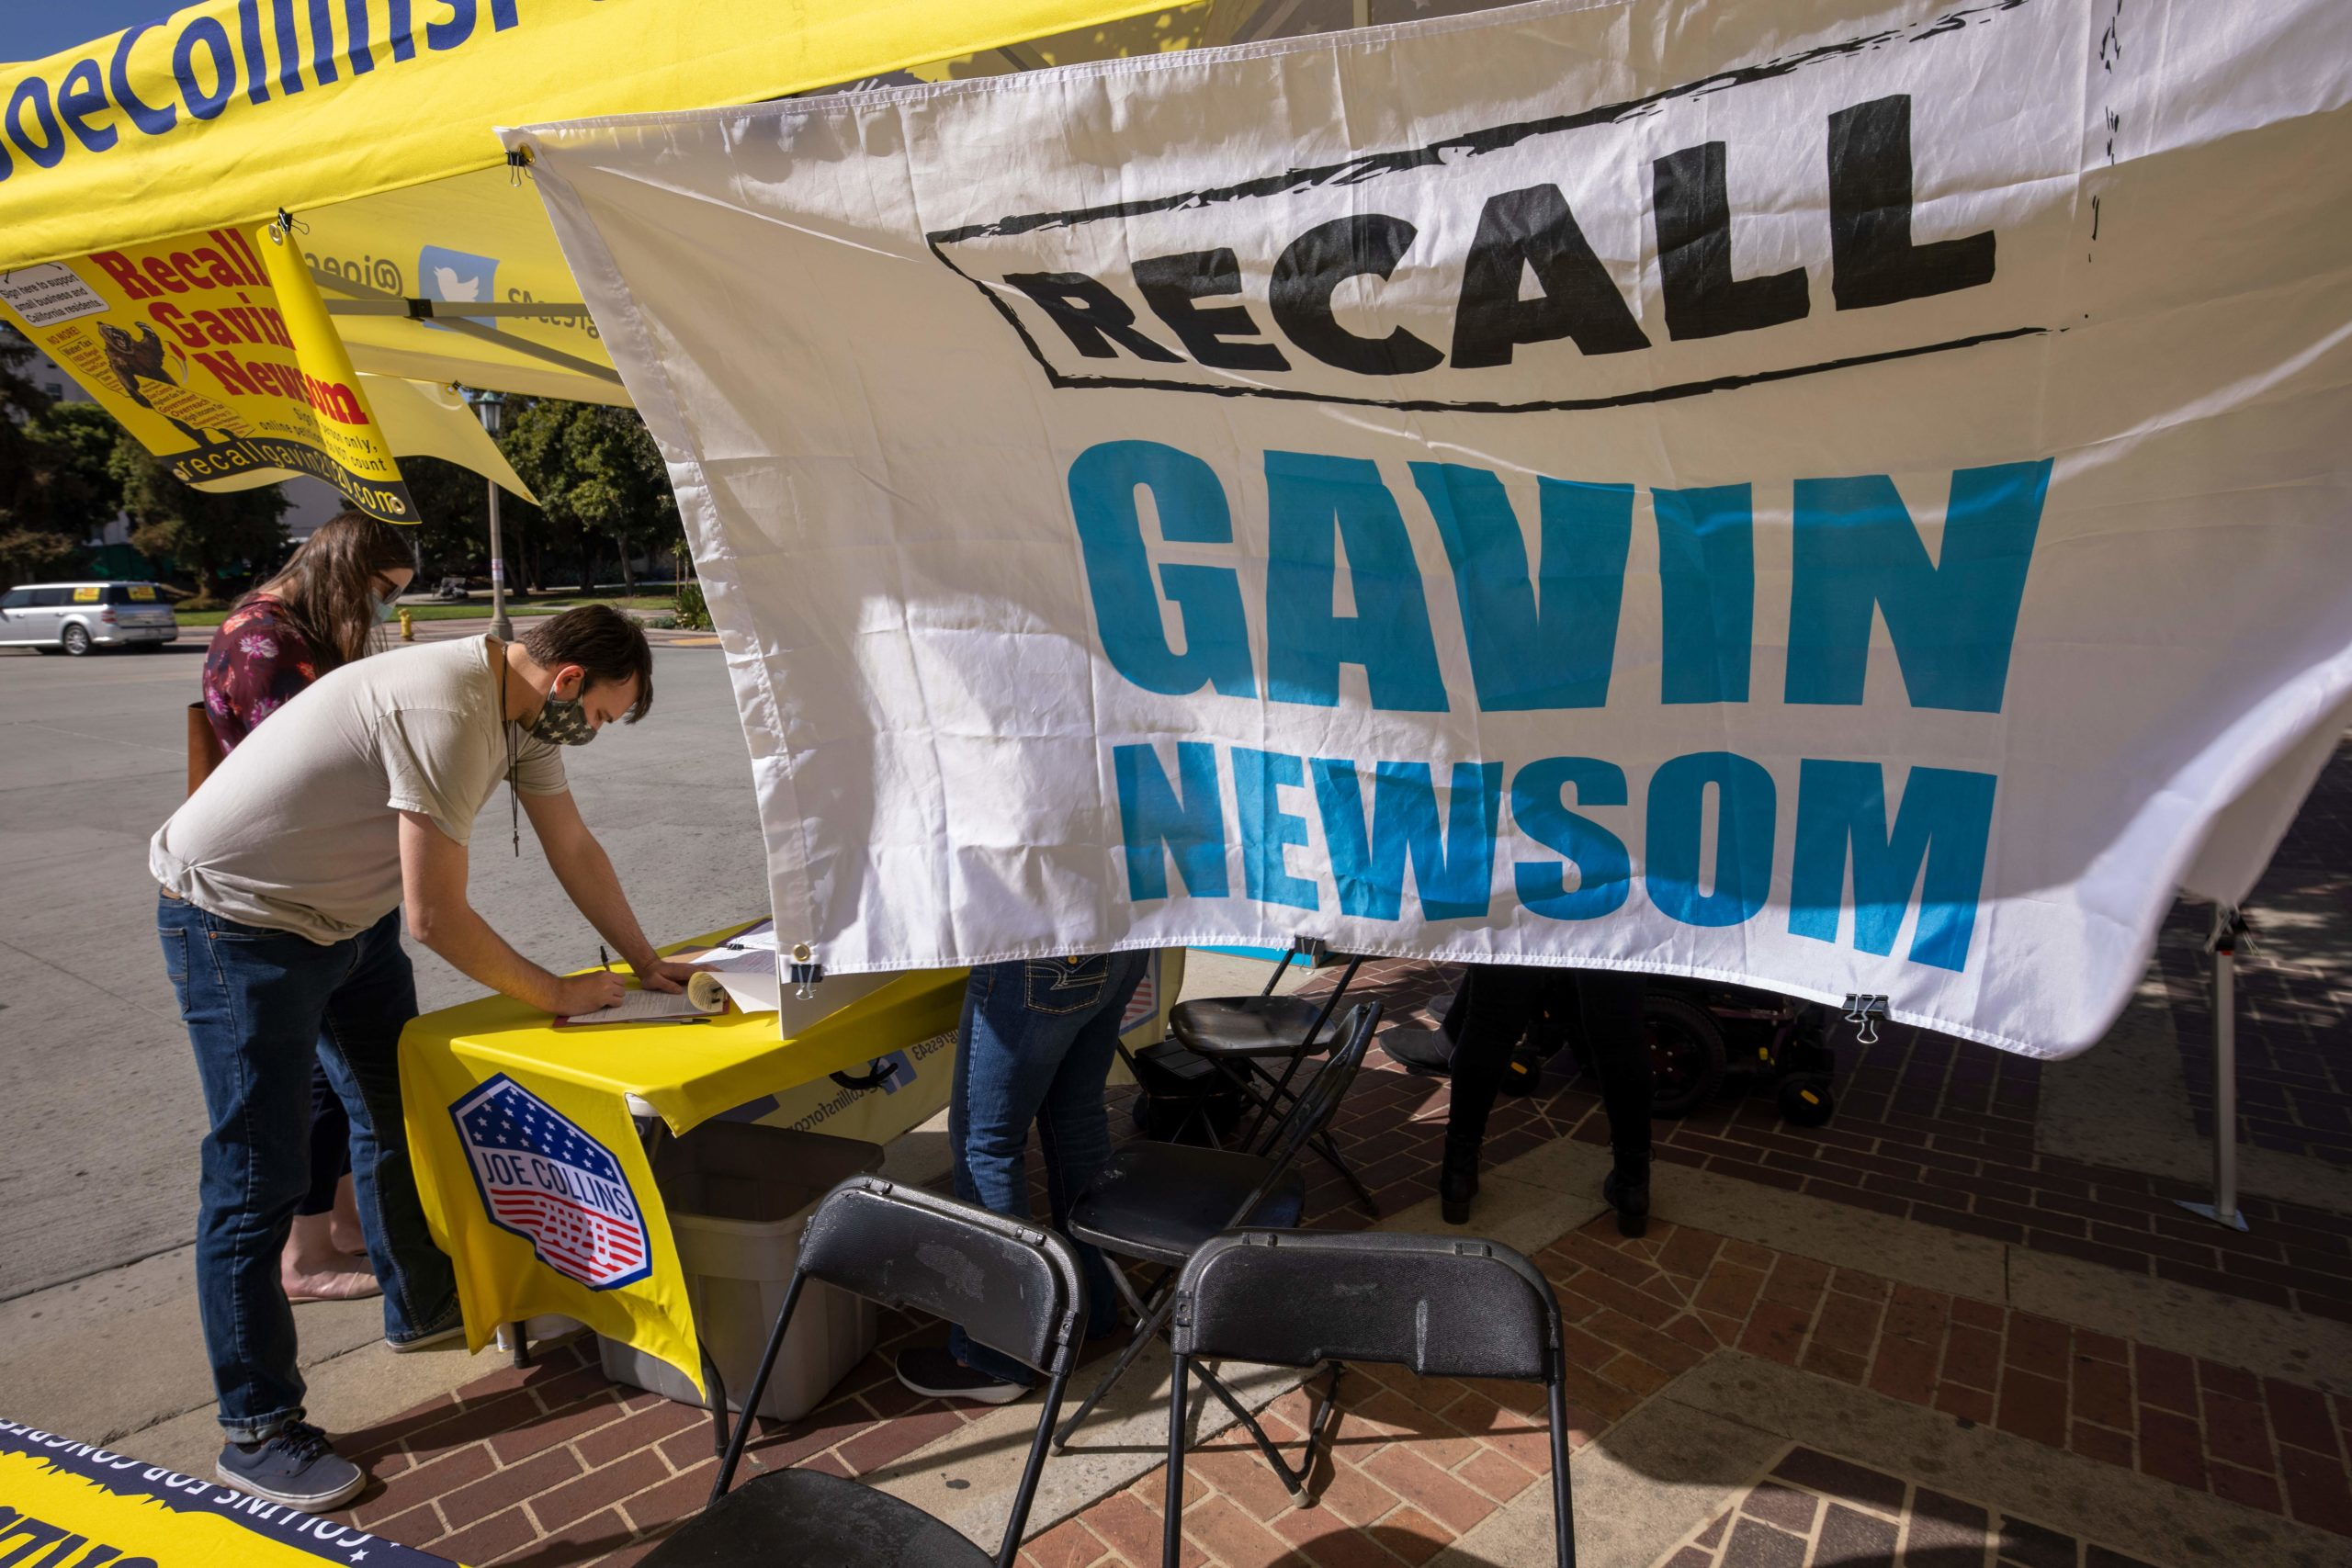 A man signs a petition as conservative activists gather signatures in a recall effort against California Governor Gavin Newsom (Photo by DAVID MCNEW/AFP via Getty Images)